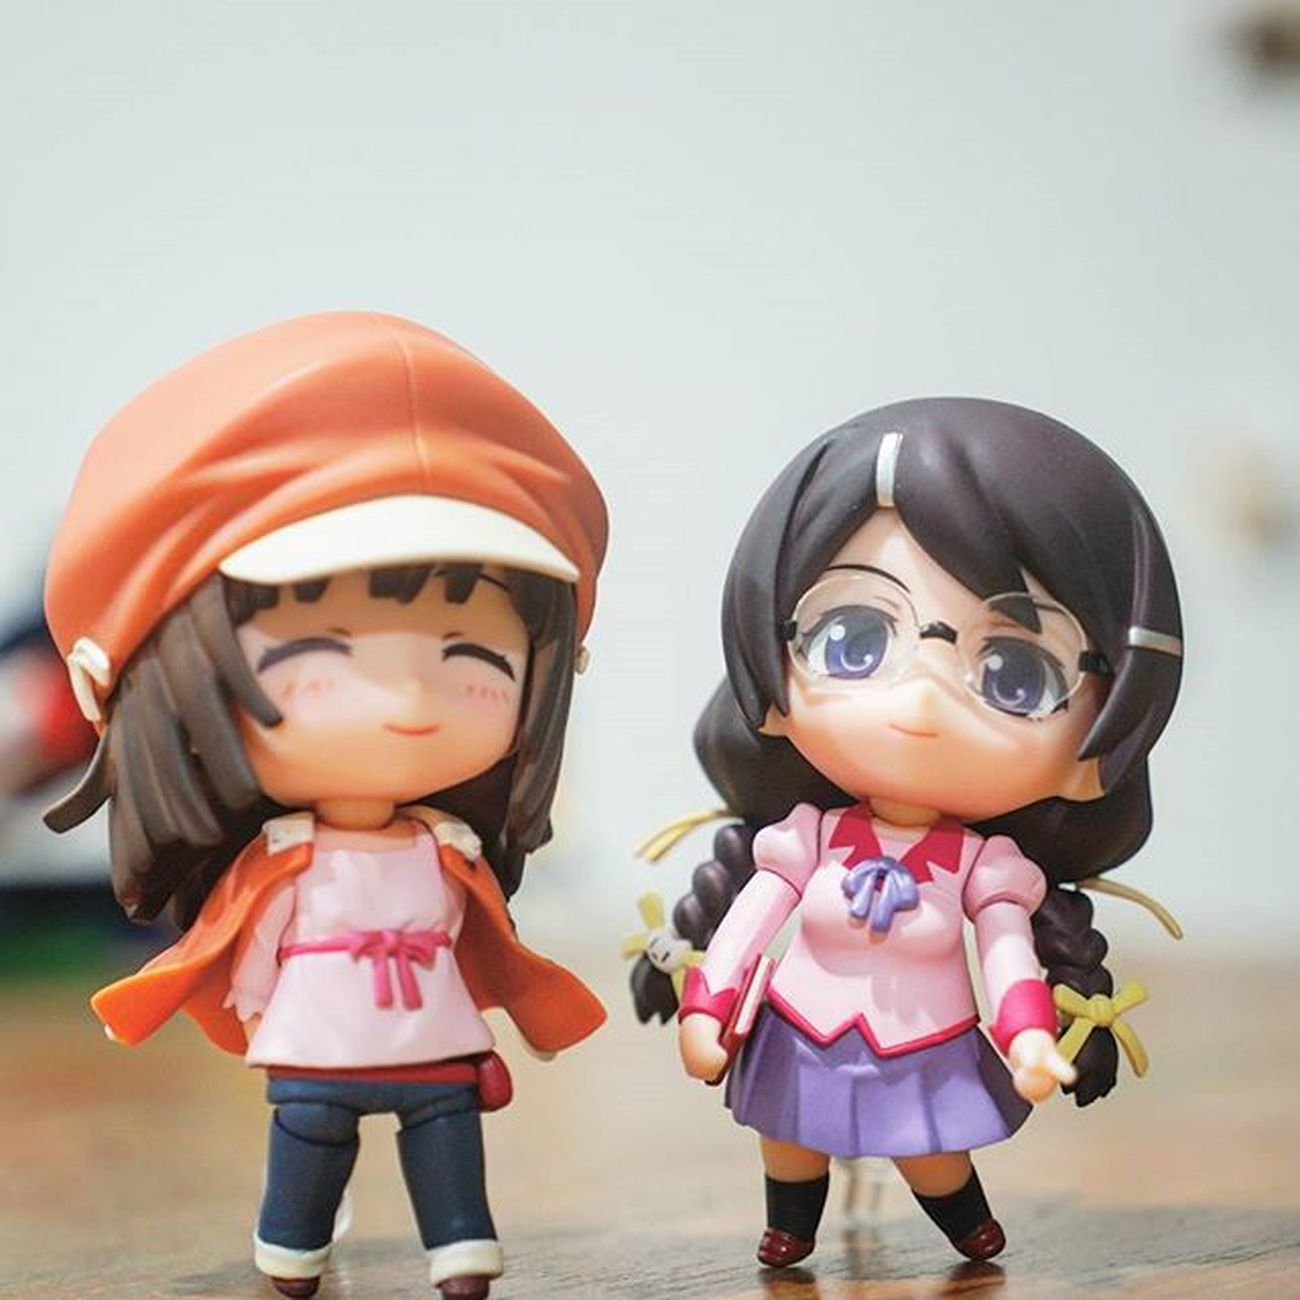 One of my earliest works with Nendoroids Nendoplanet Nendoroid Nendoroids Nendoworld Figma Nendoworks Nendomalaysia Nendogram Sony A7ii Nendophotographer Nendophotography Nendography Toyphotography A7 A6000 Toyphotographer Toyphotographers Toysnapshot Nendosnapshot Toyinstagram Toycommunity Toycommunities Sonyalpha Xperia_knight bakemonogatari sonya7ii sonya7 sonya6000 sel30m35